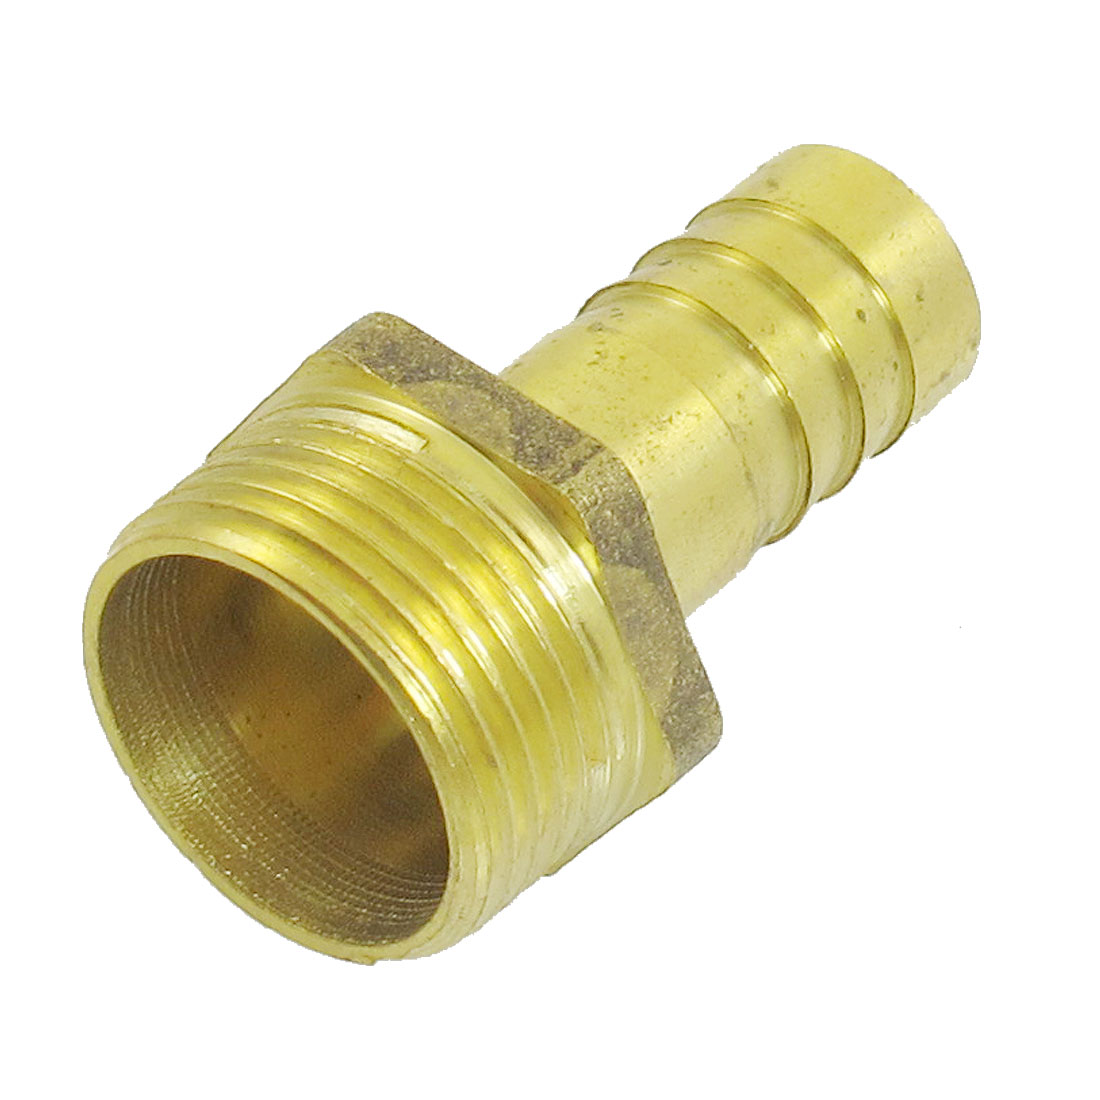 "Gold Tone Brass 16mm Hose Tail Dia 3/4"" Male Thread Coupling Fitting"